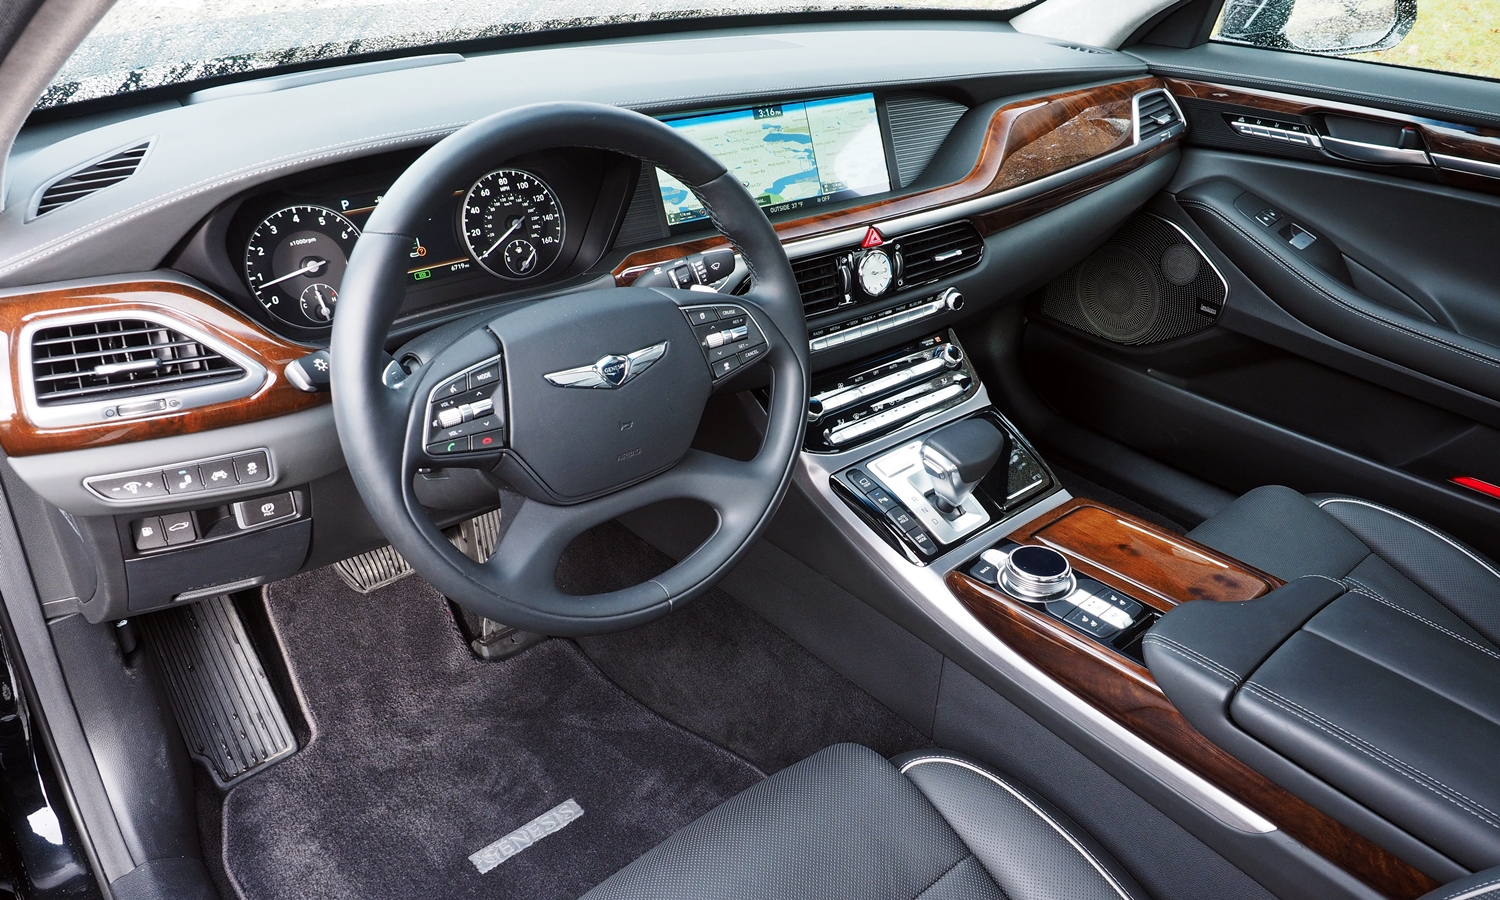 2017 Genesis G90 Pros and Cons at TrueDelta 2017 Genesis G90 Review by Michael Karesh